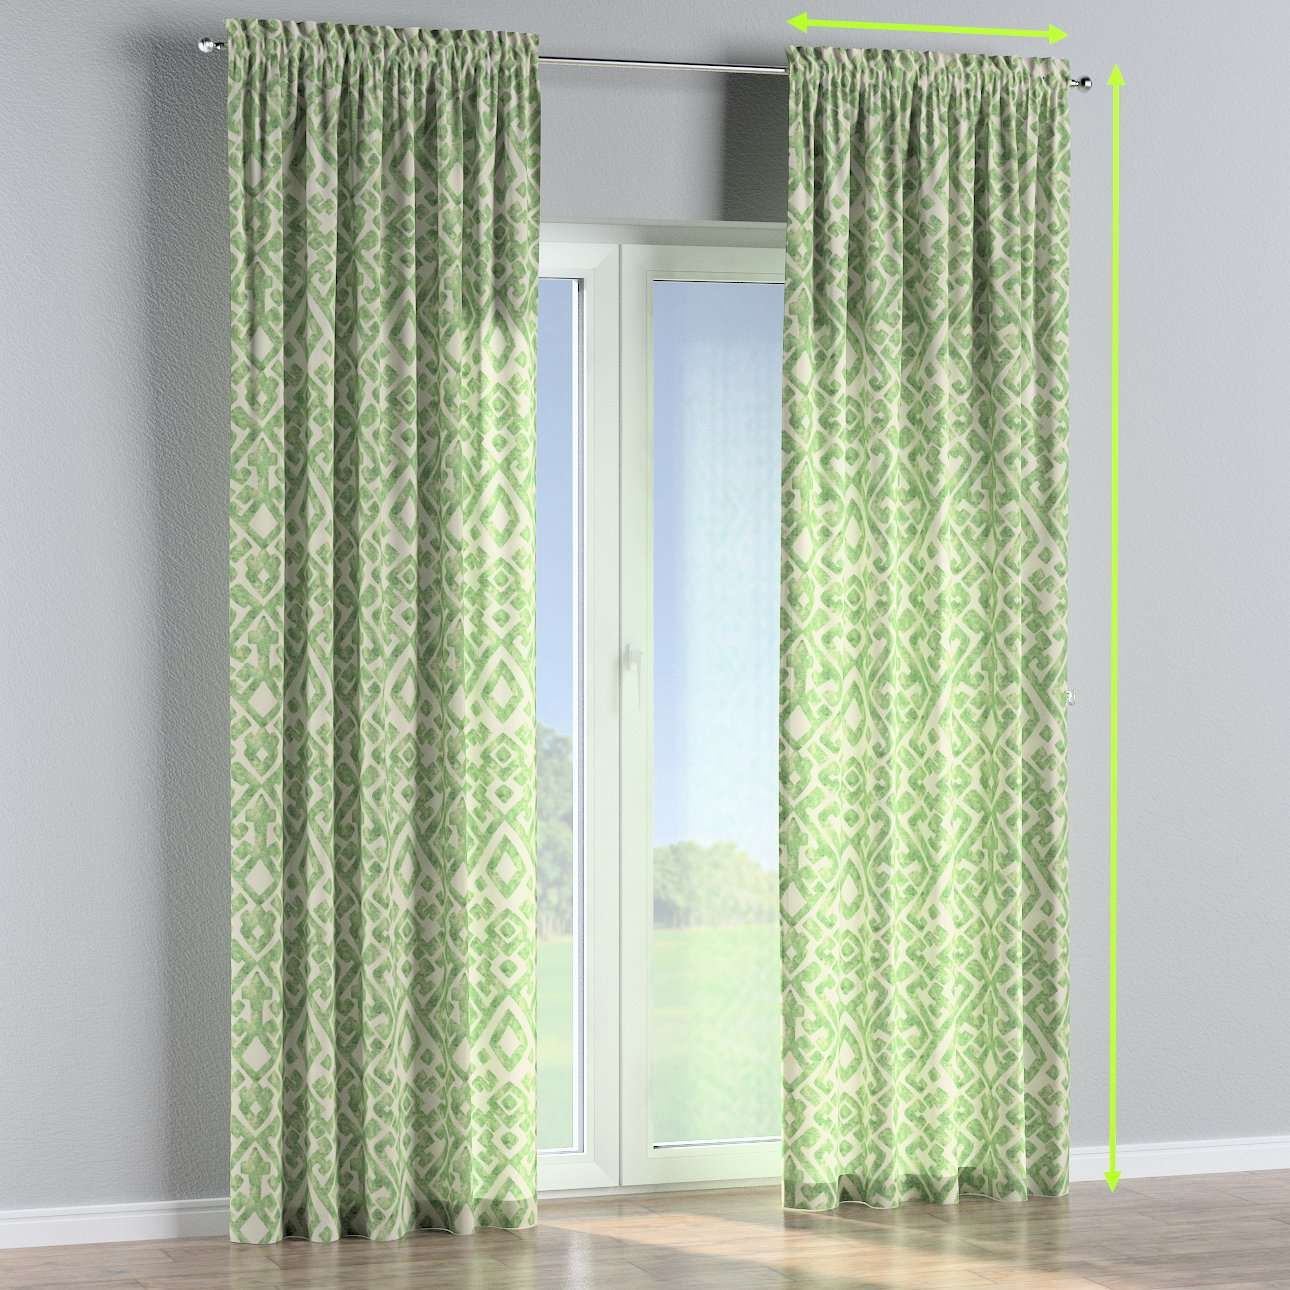 Slot and frill lined curtains in collection Urban Jungle, fabric: 141-62